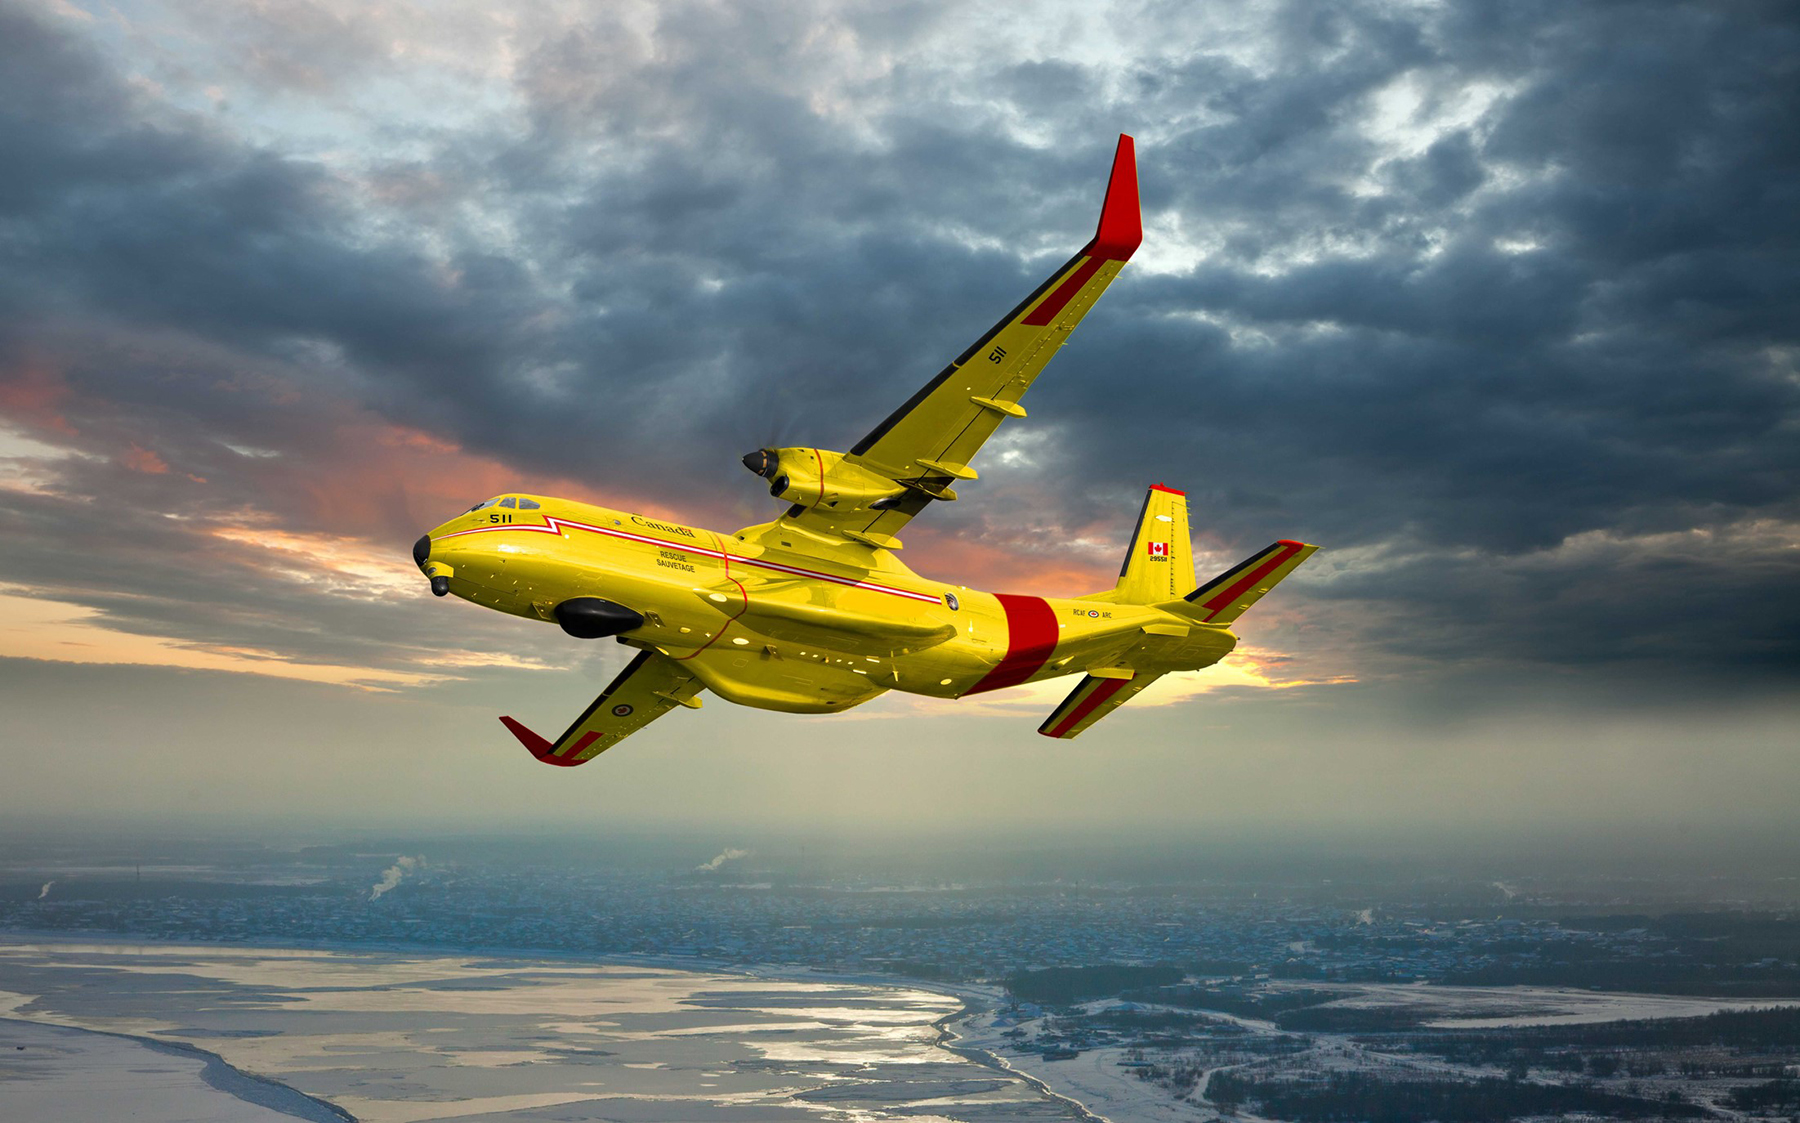 An artist's concept of a yellow aircraft, with red wingtips and markings, flying over a winter landscape